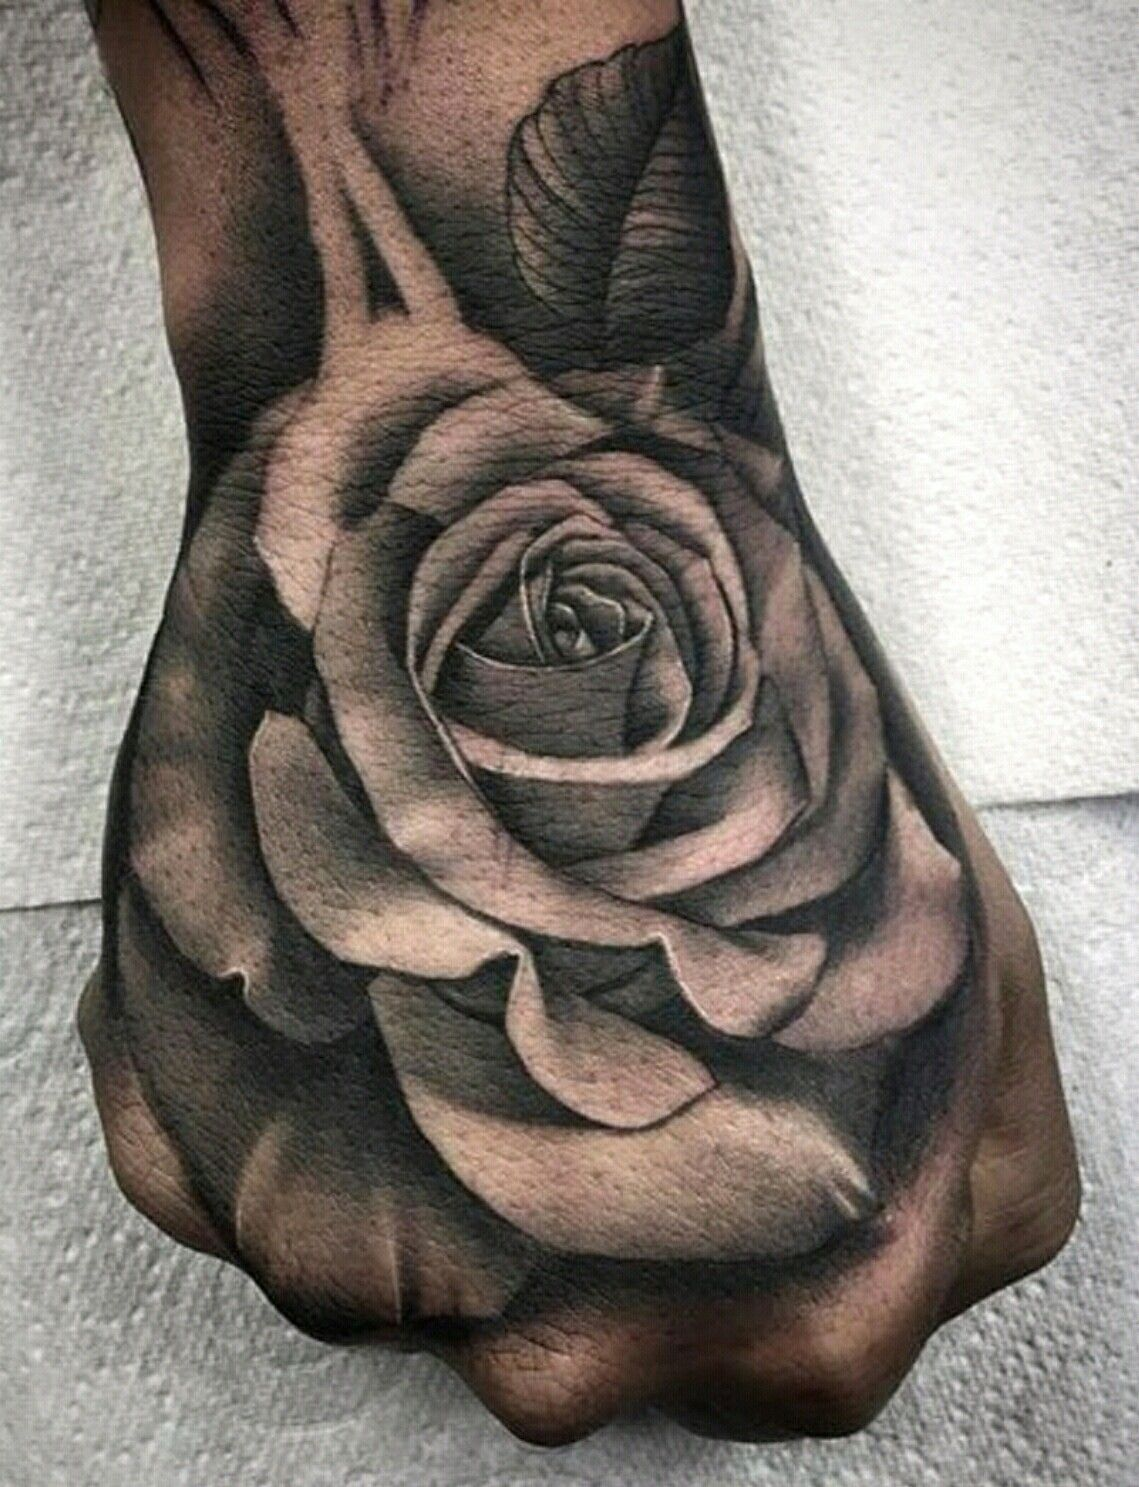 Pin By Denny 24 On Tattoos Rose Hand Tattoo Hand Tattoos For Guys Hand Tattoos